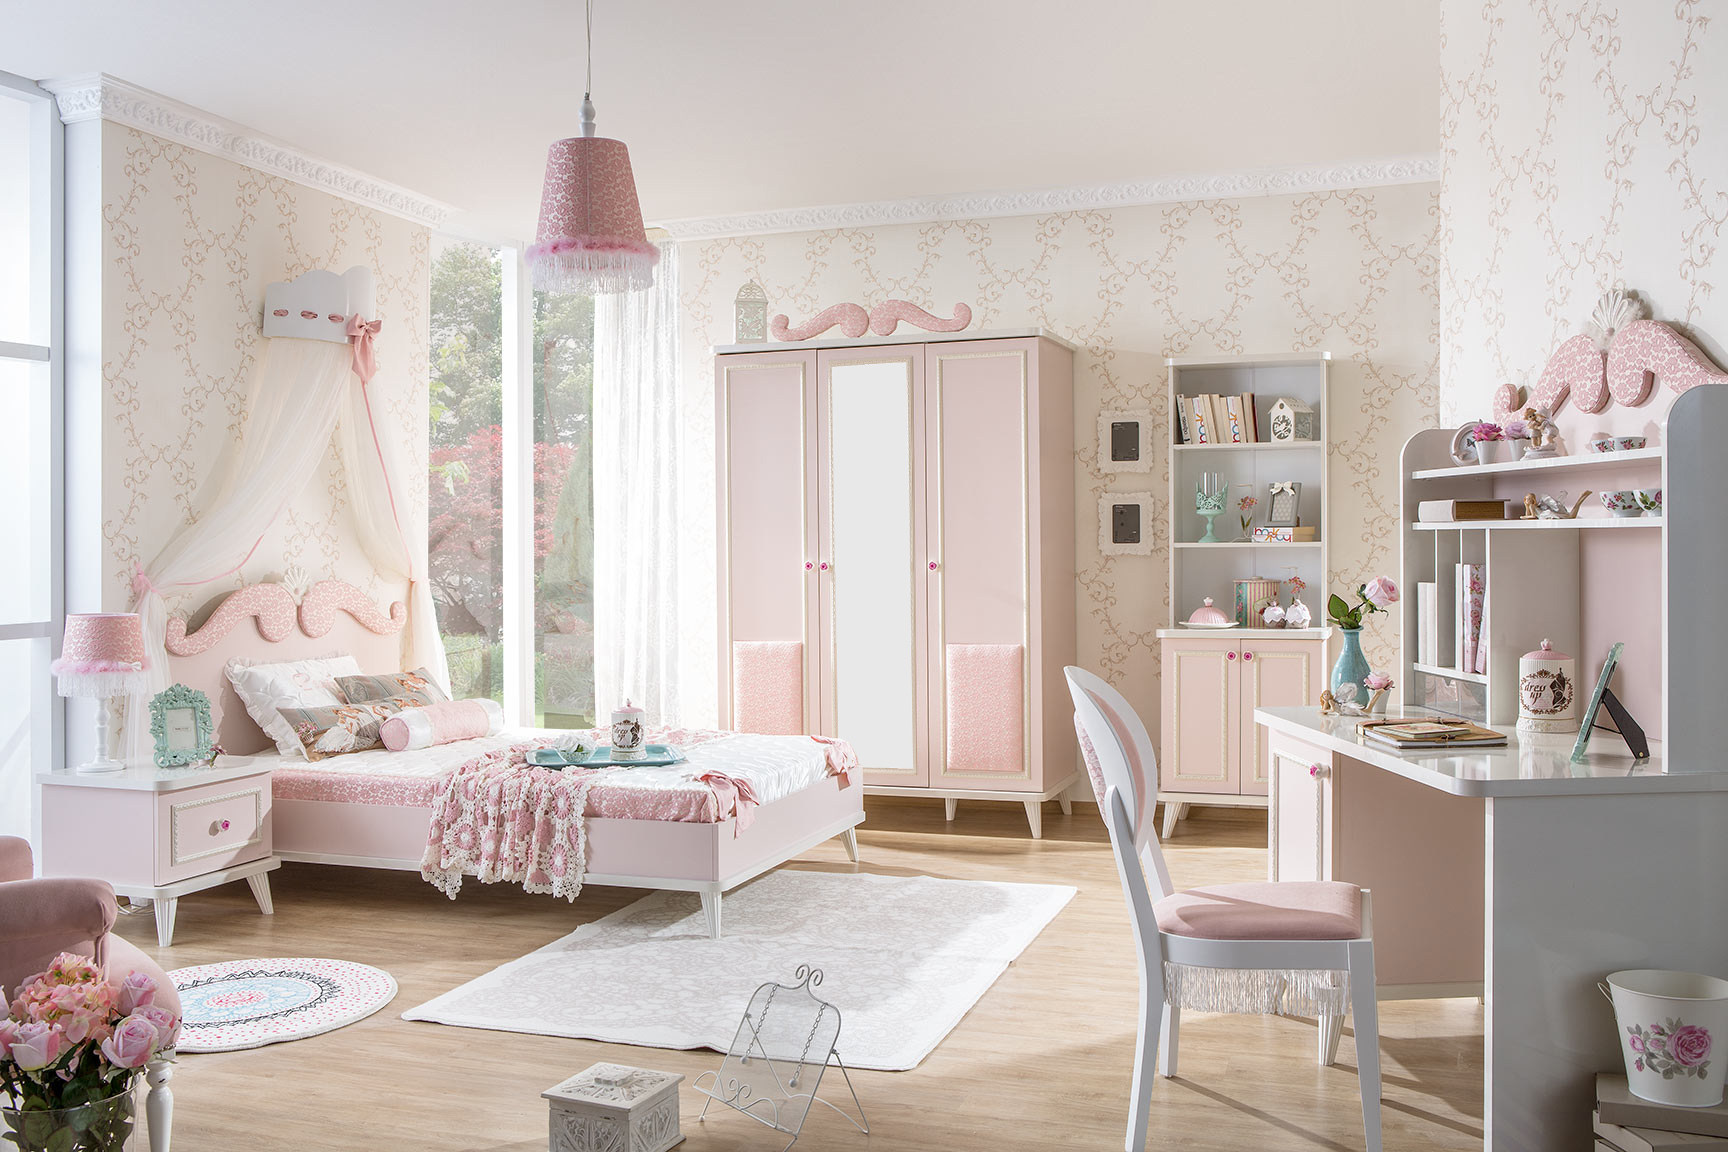 meble dla dziewczynek rosa meble dzieci ce meble m odzie owe eczka dzieci ce. Black Bedroom Furniture Sets. Home Design Ideas